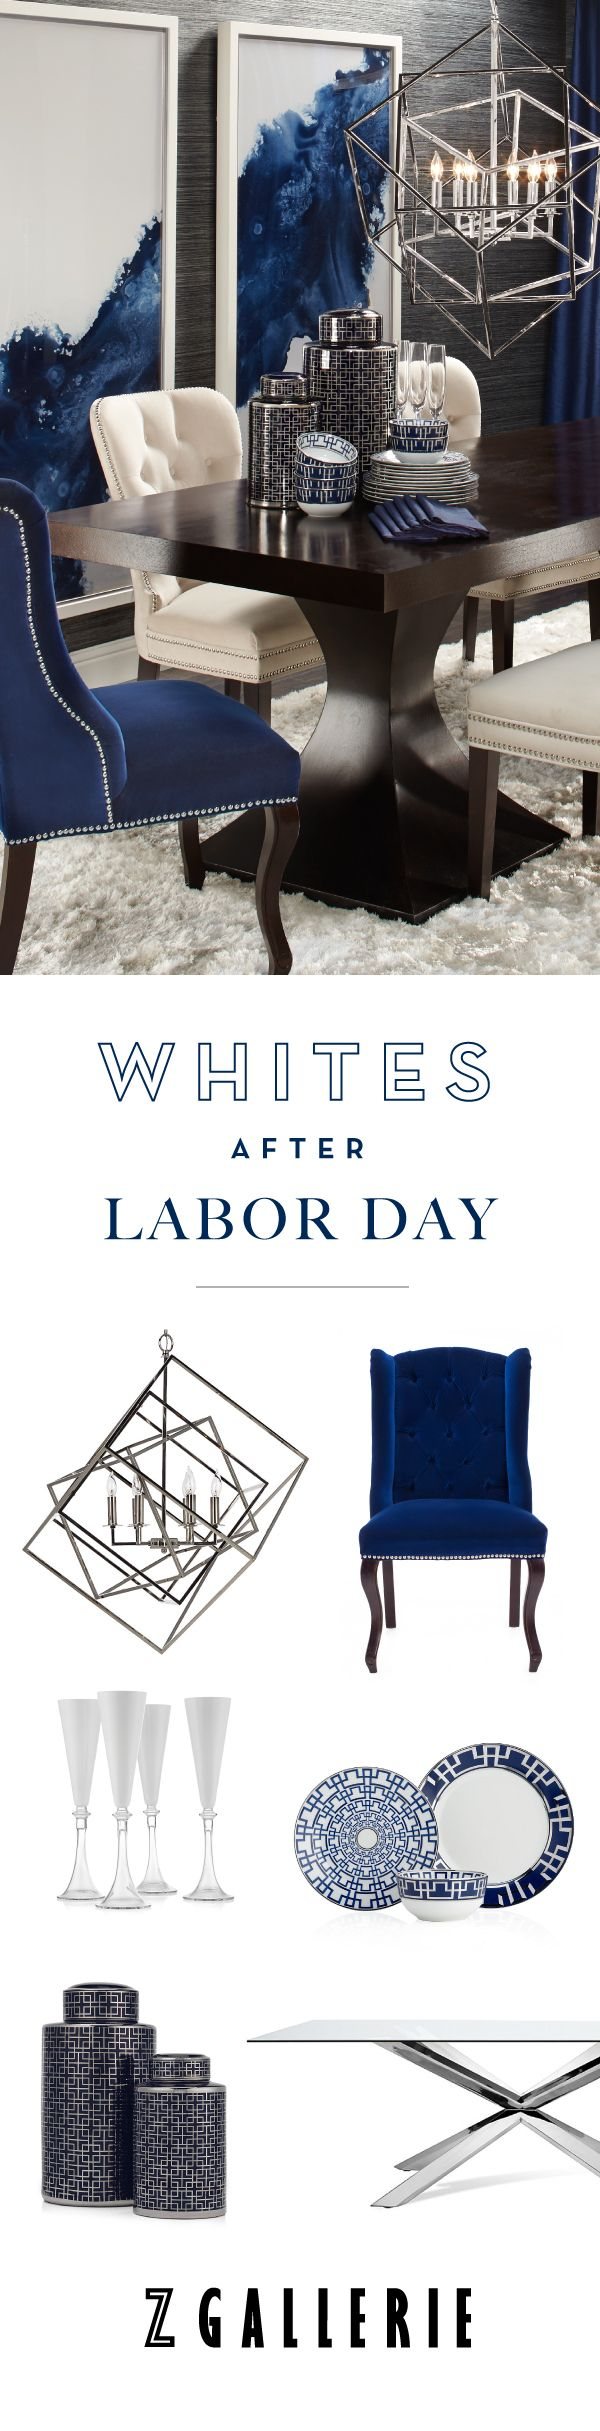 This Labor Day, celebrate with clean colors and plenty of style. Save 15% through Tuesday 9/6 on all regular price items, in-store and online on zgallerie.com!